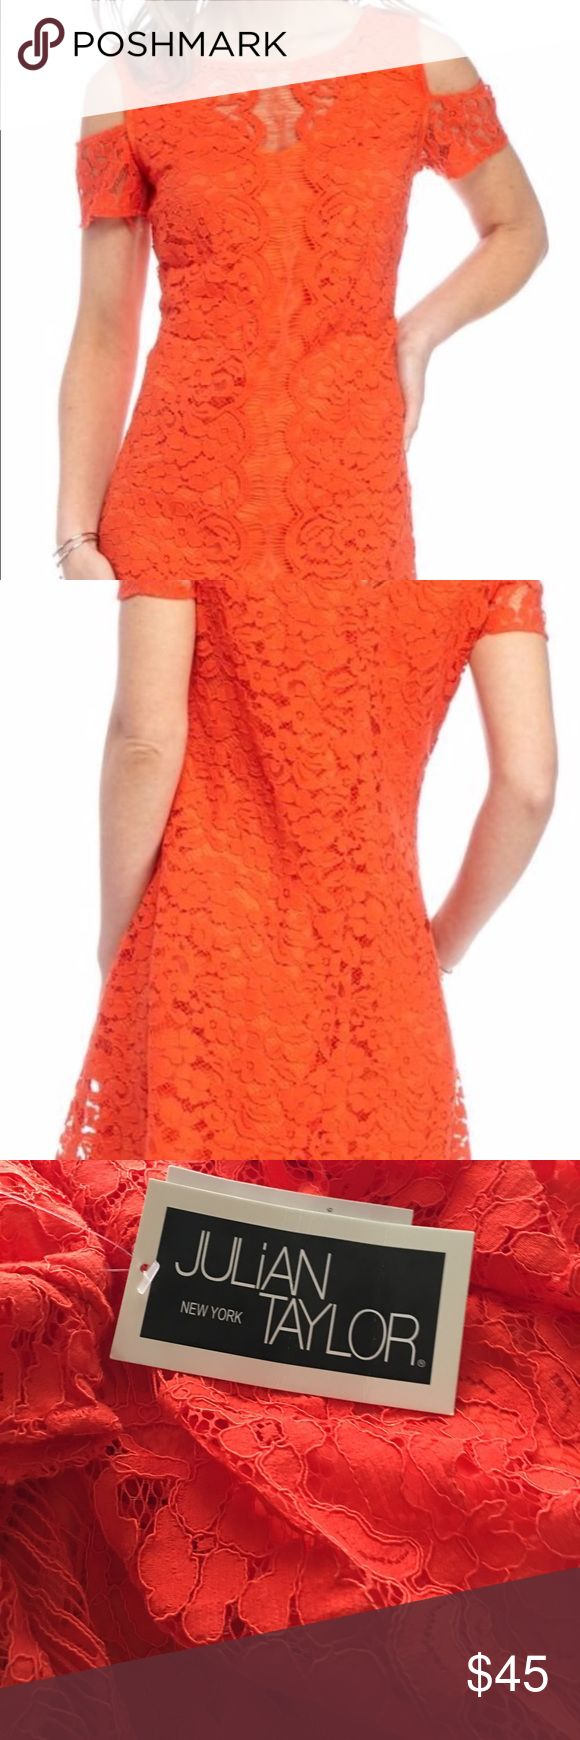 "Orange lace dress cold shoulders Cold Shoulder, Crew neckline A-line, shift dress. Fully lined Back closure 42"" length from shoulder to hem ( Size 14) Fit more like size 12 bust 40 1/2"". 33 1/2 waist. 43 1/2 hip Occasion: Cocktail dress, Party dress, wedding guest Cold shoulder Lace Dress. Adorned with delicate feminine lace in a slightly A-line silhouette that gives a super flattering fit, to any shape and size. These lace Party dress is the perfect addition to your summer wadrobe. Fully…"